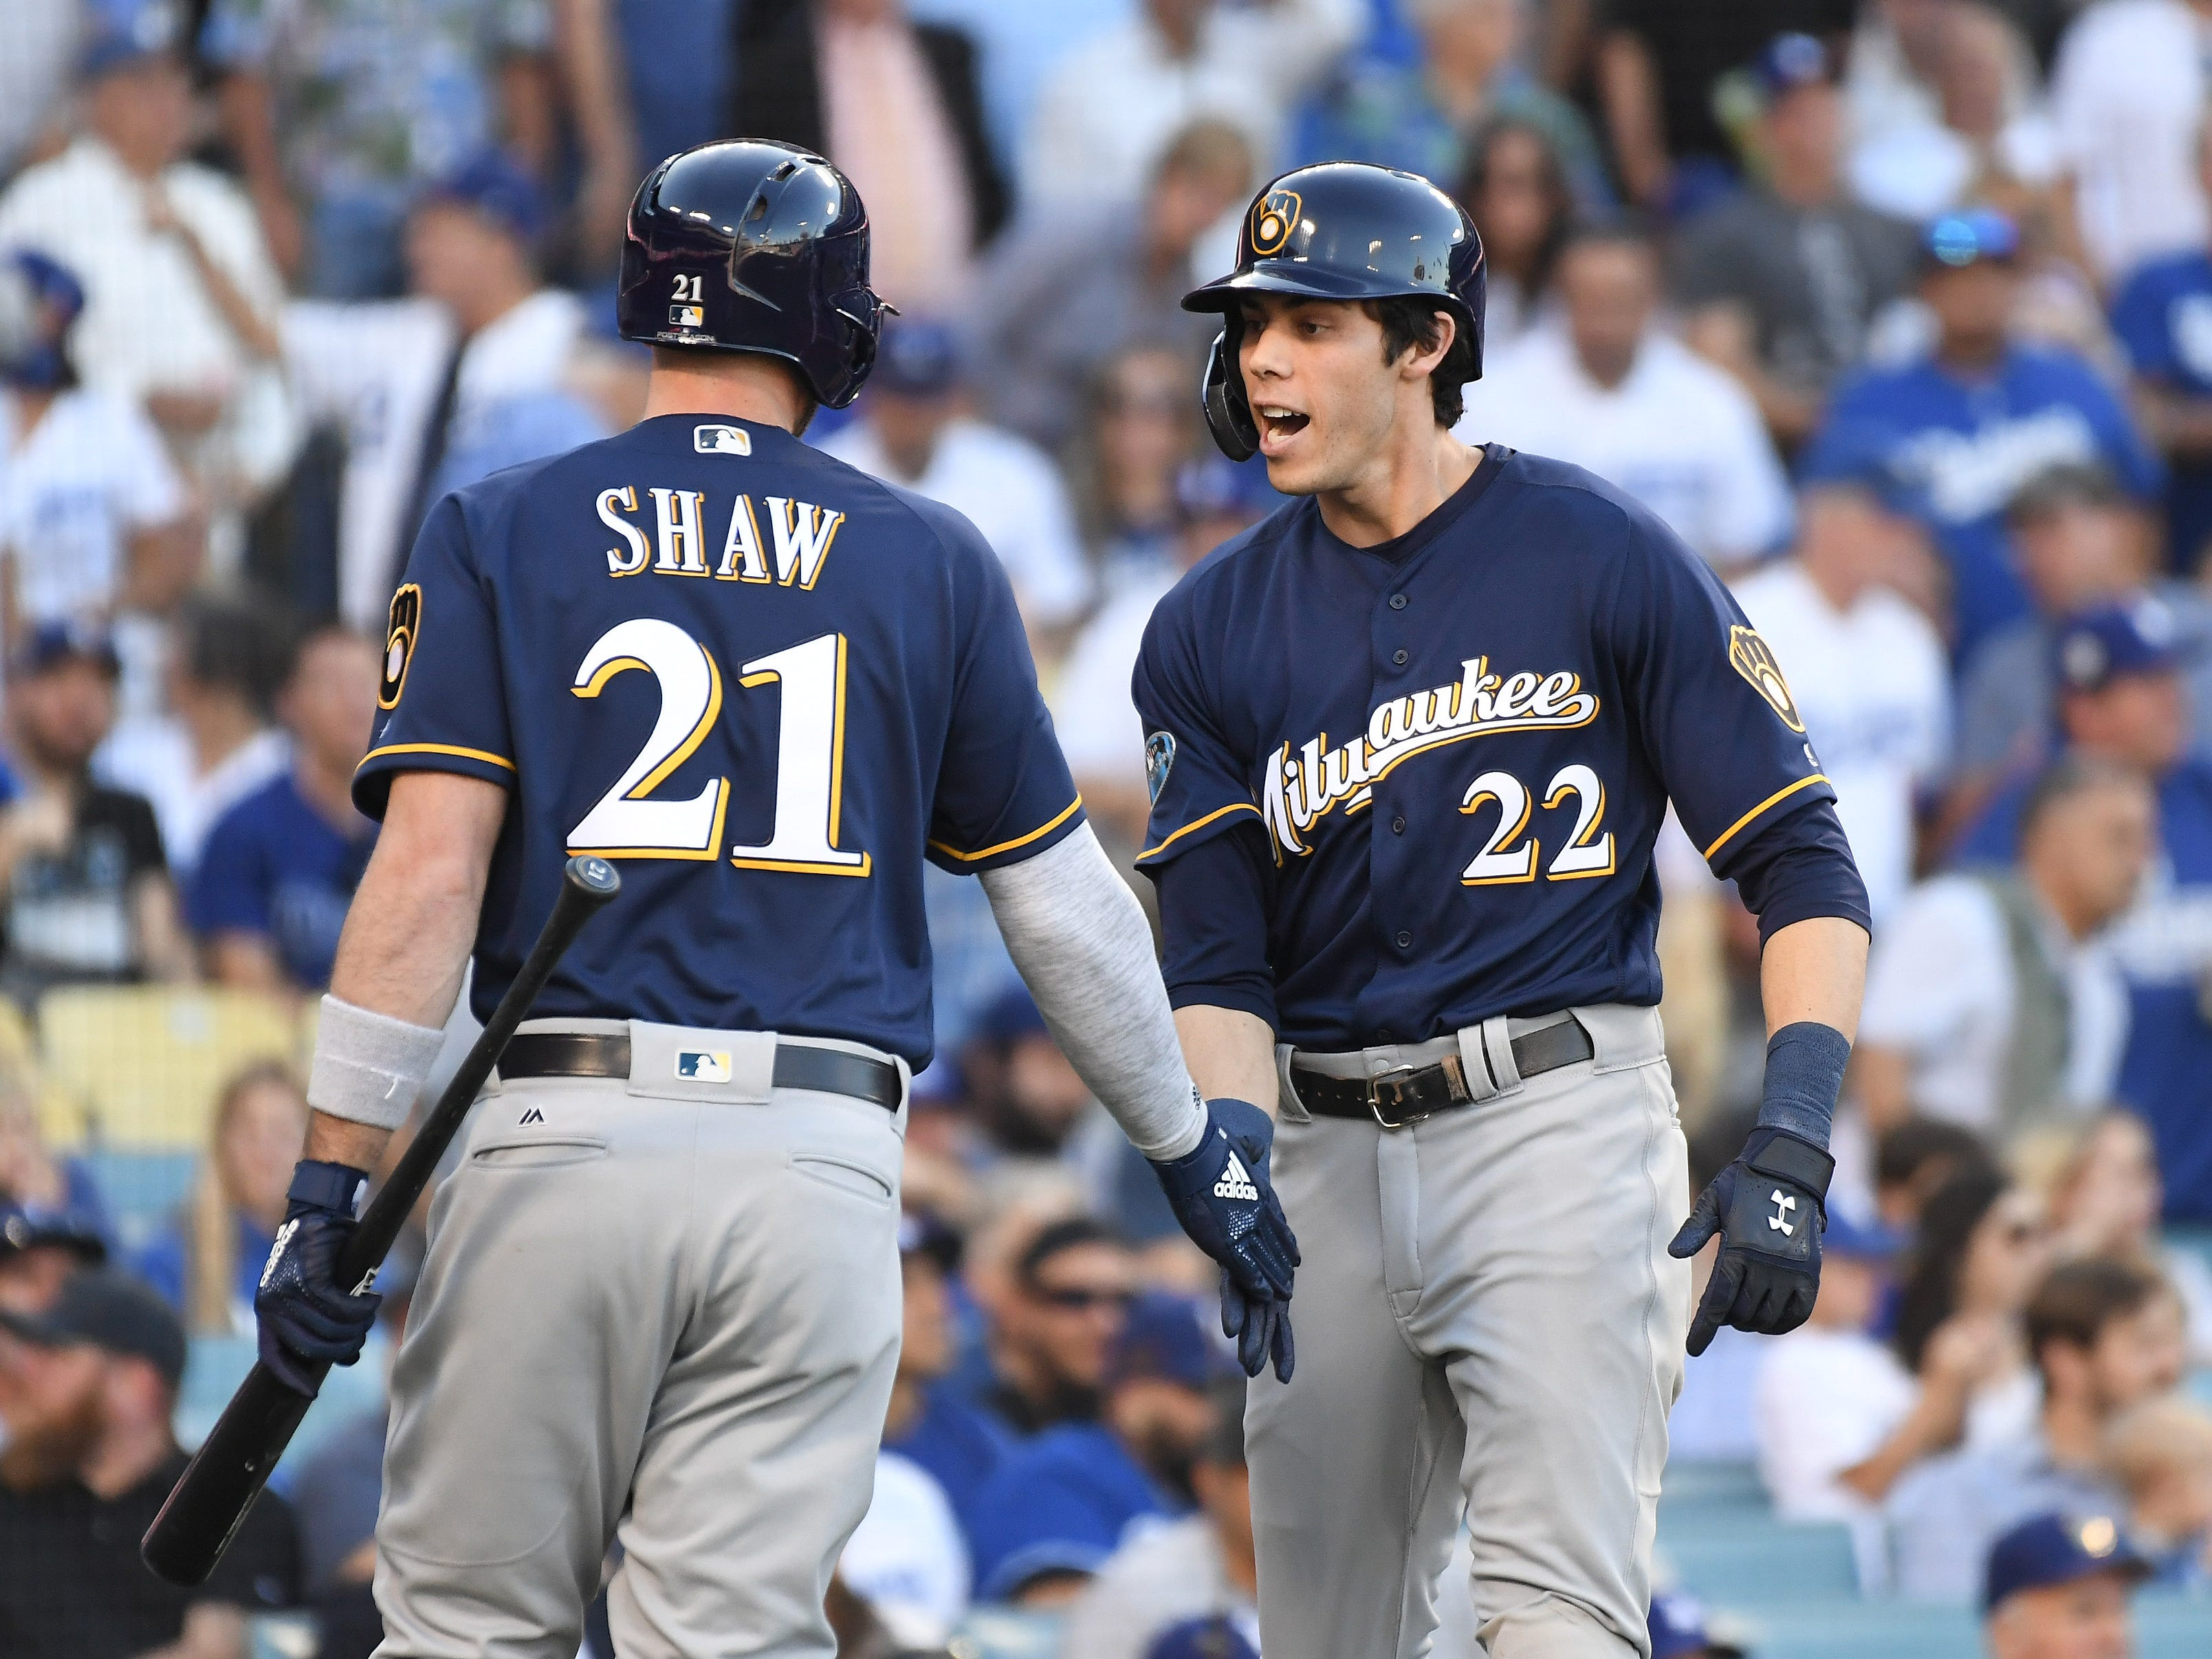 NLDS Game 3: Brewers right fielder Christian Yelich scores on on an double by left fielder Ryan Braun in the first inning.